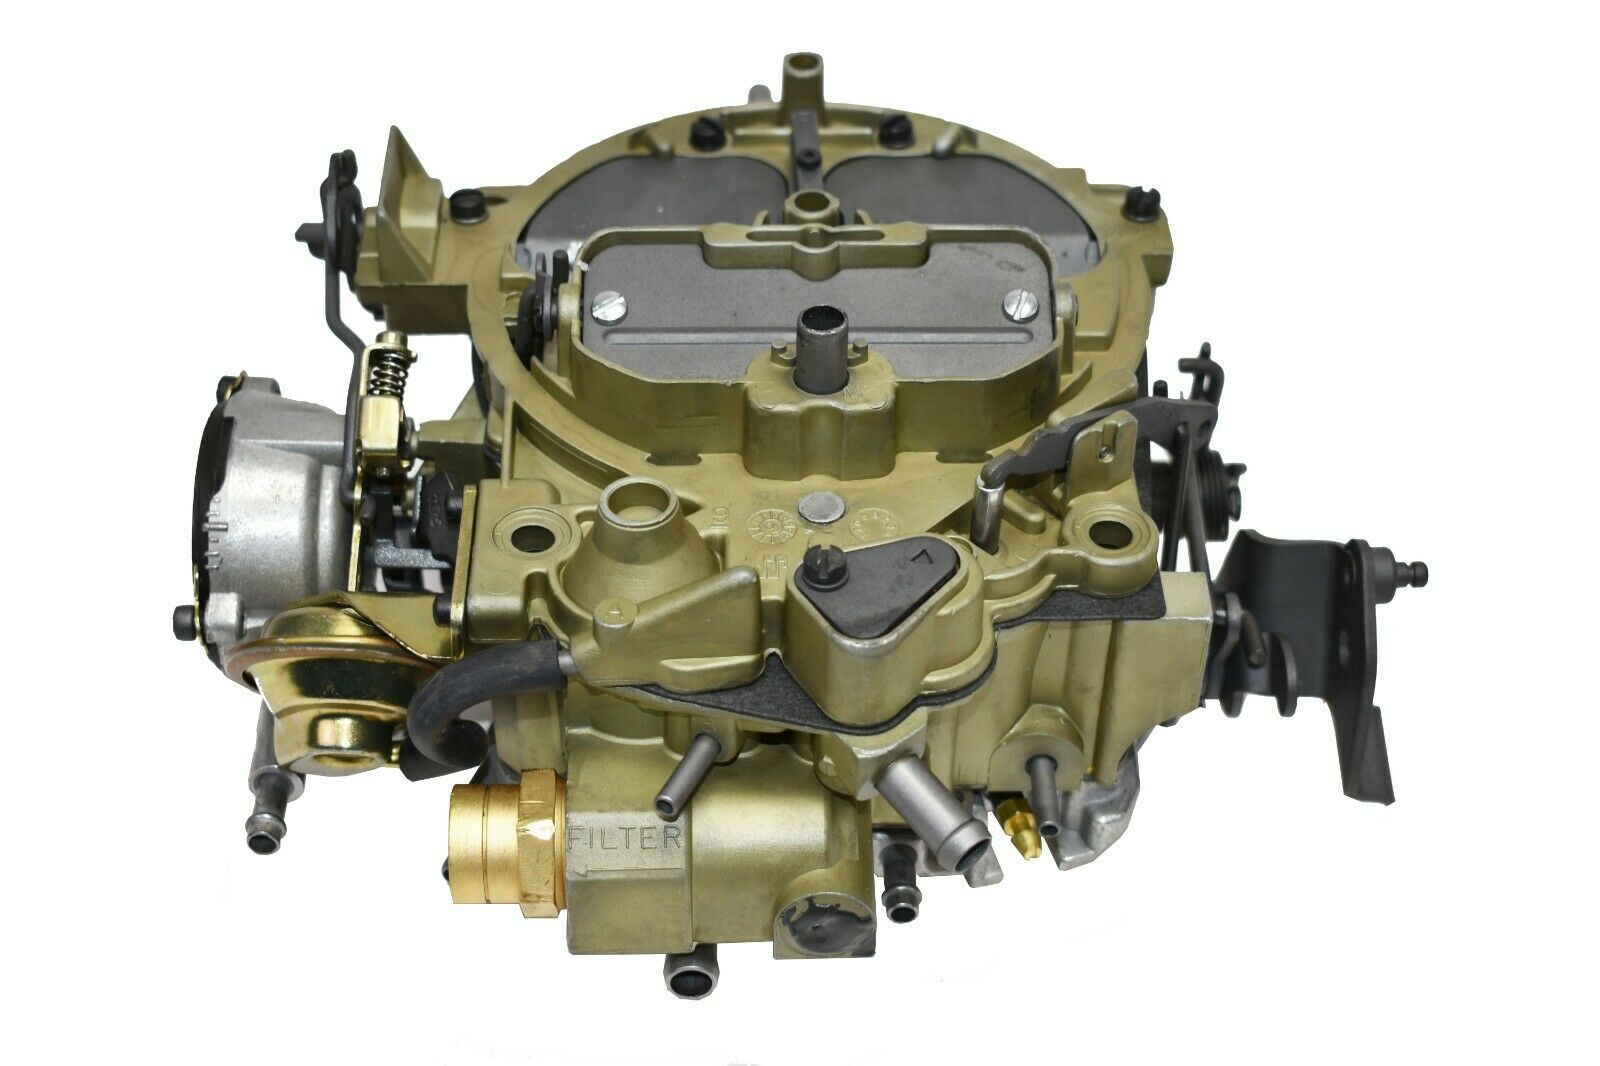 Remanufactured Rochester Quadrajet Carburetor 75-85 Hot Air